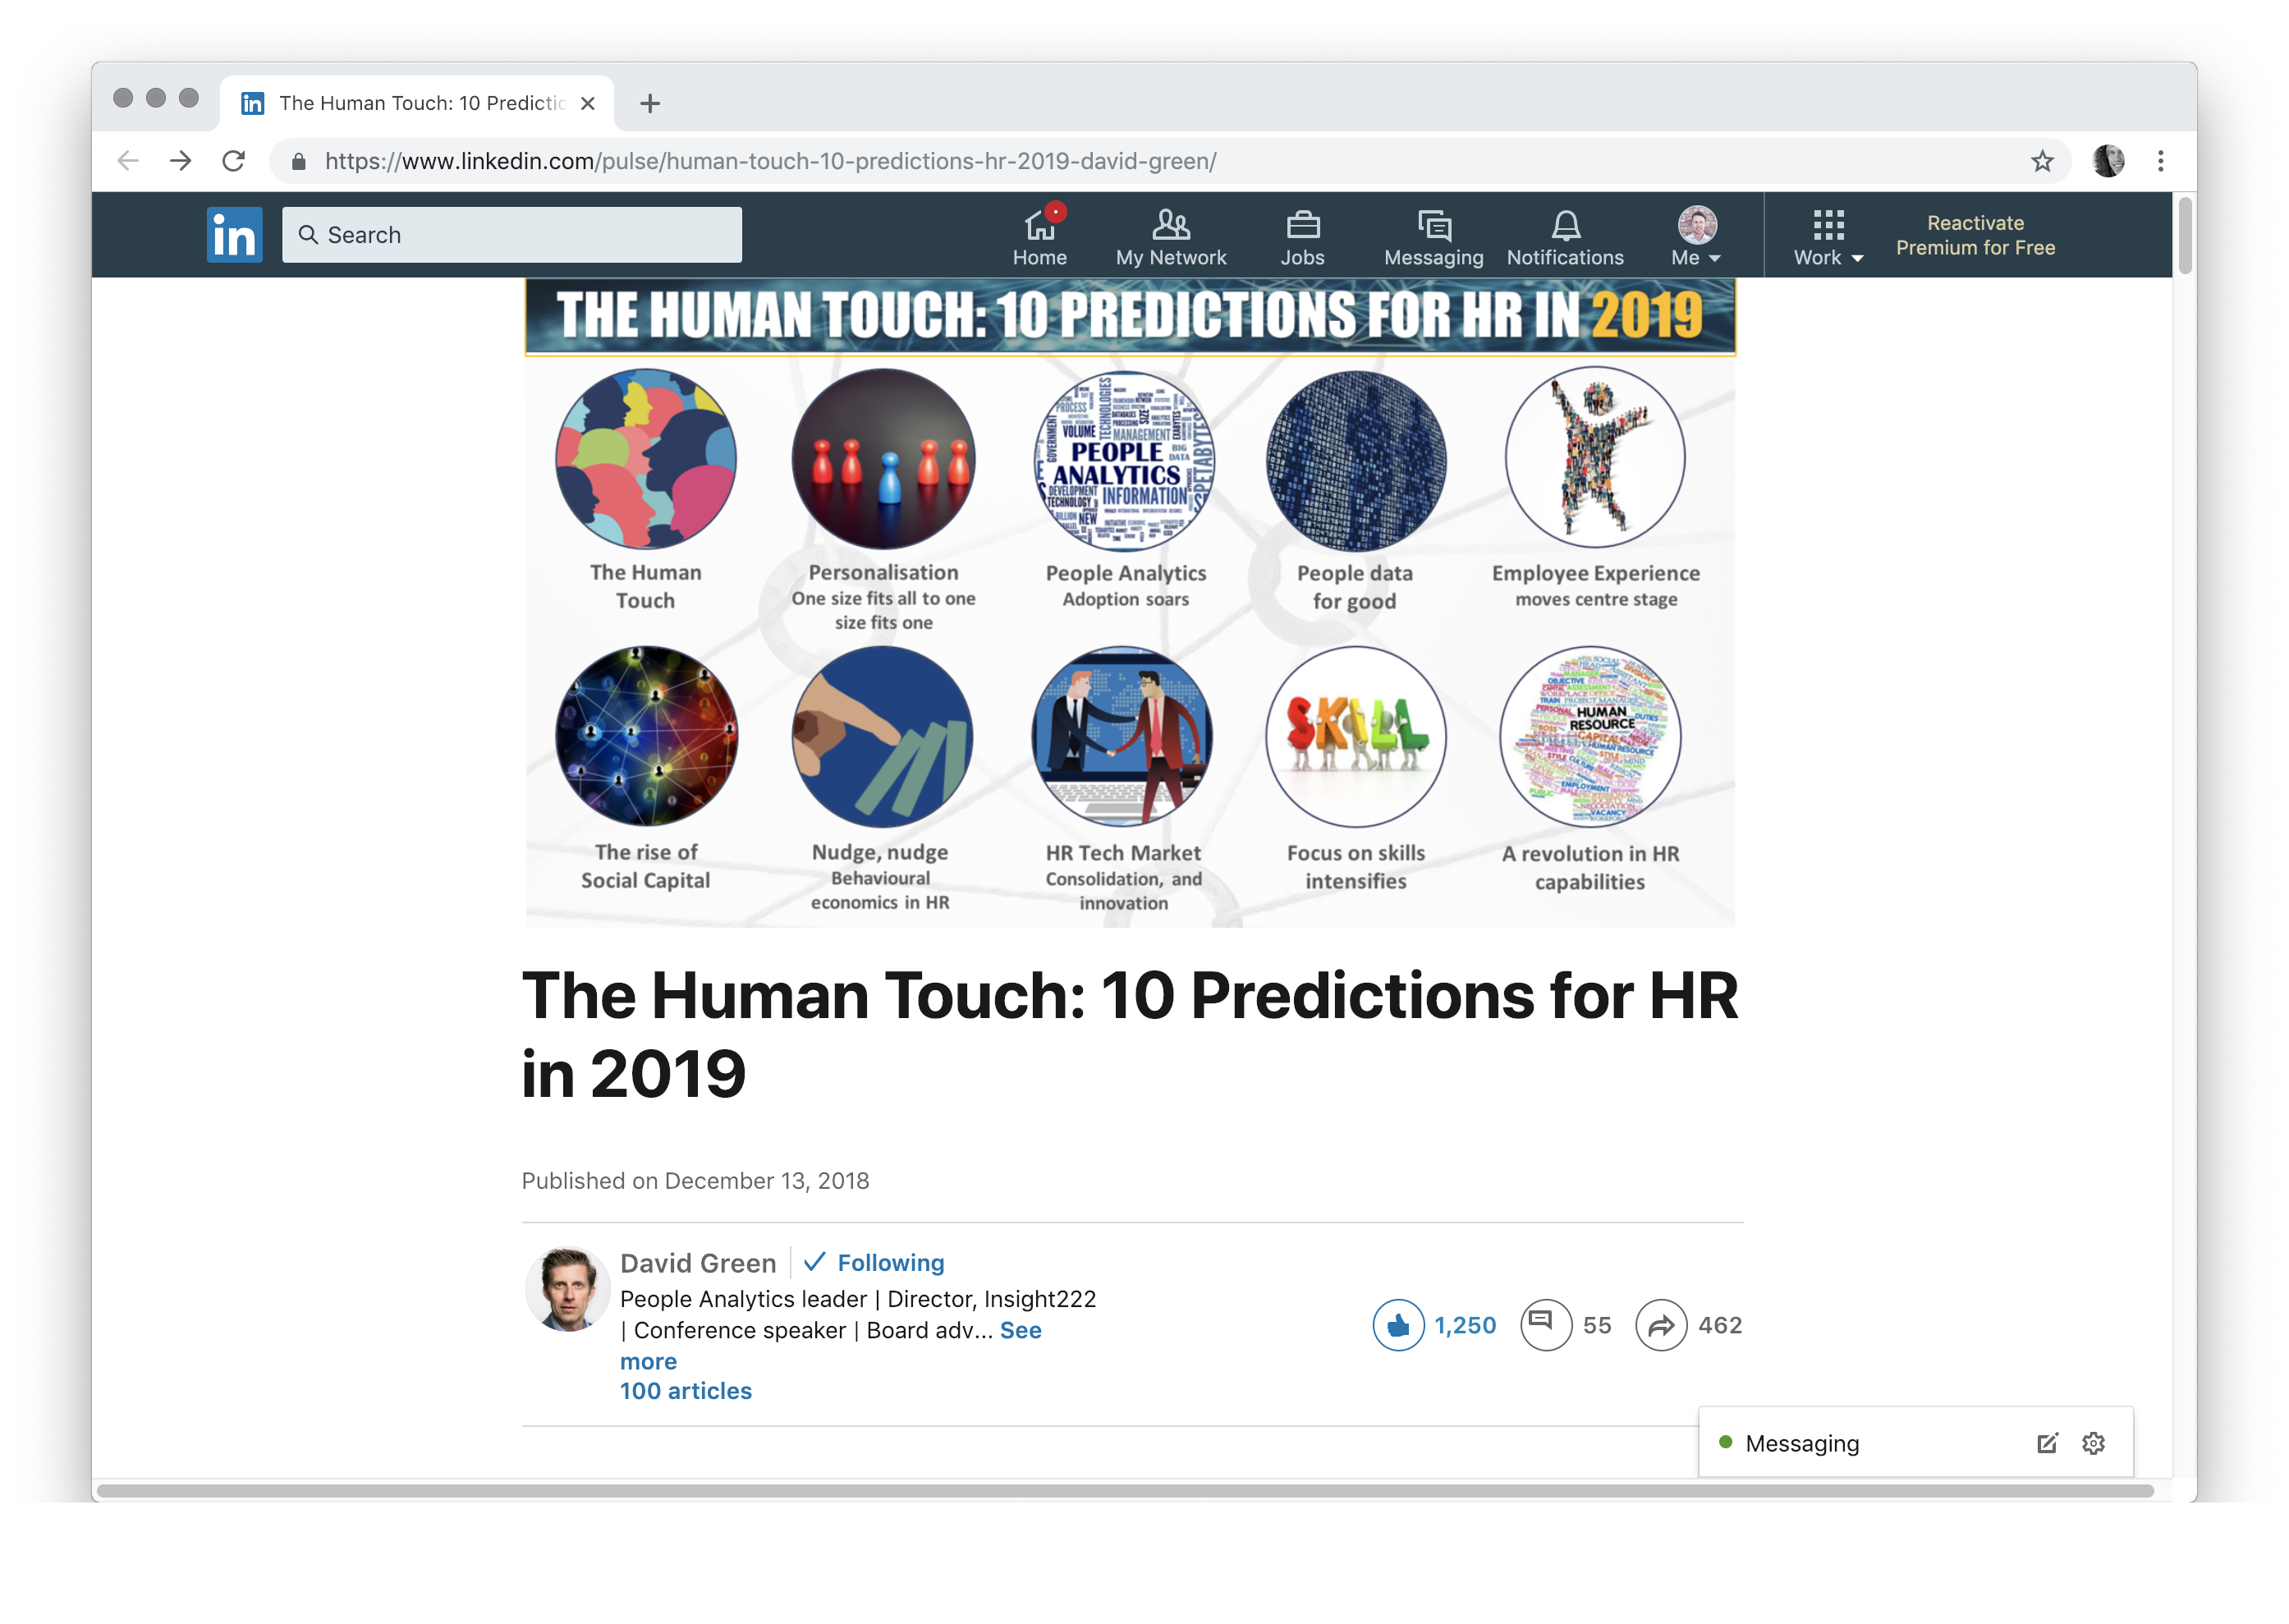 The Human Touch: 10 Predictions for HR in 2019 cakehr